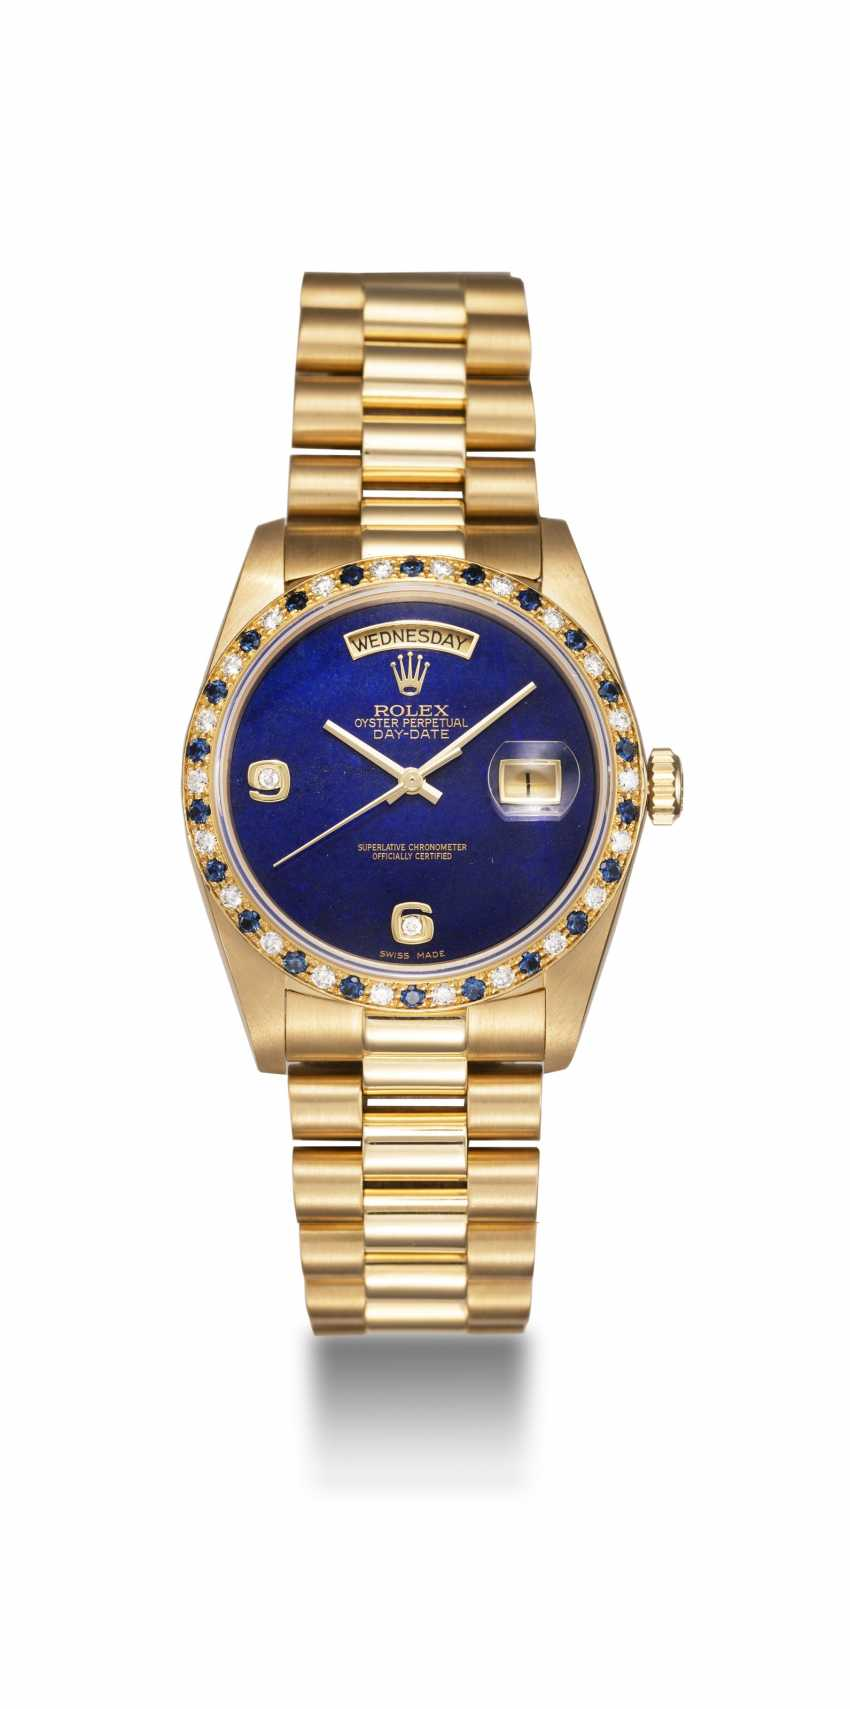 ROLEX, A GOLD OYSTER PERPETUAL DAY-DATE WITH SAPPHIRE AND DIAMOND CRUSTED BEZEL AND LAPIS-LAZULI DIAL, REF. 18148 - photo 3